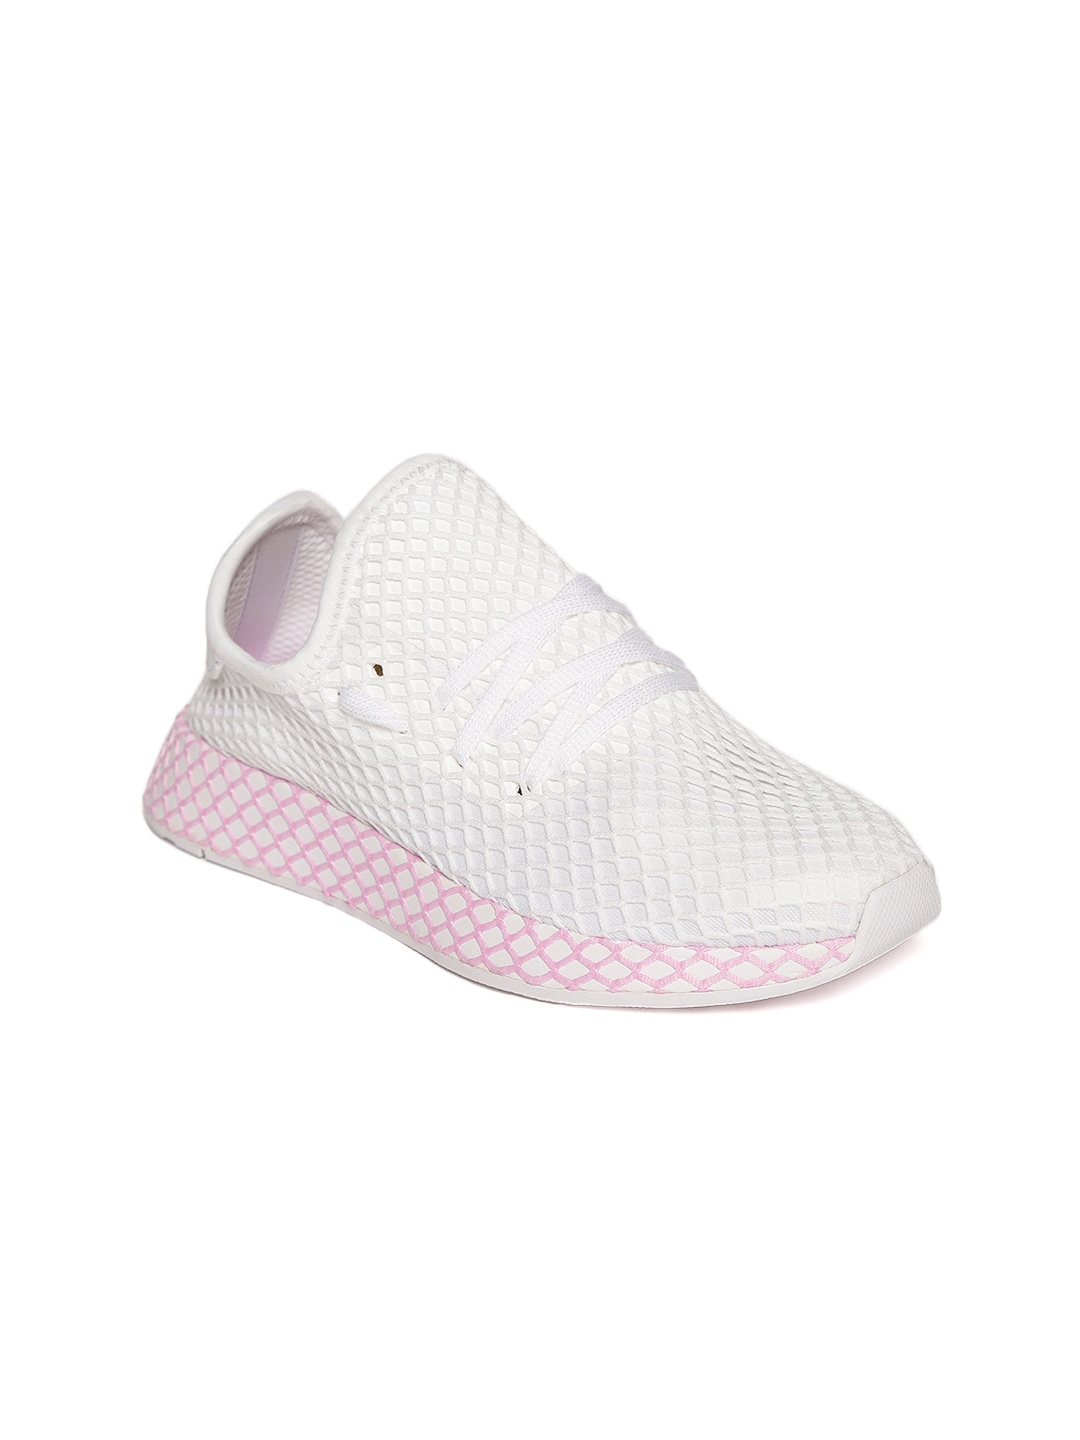 80aa21645 Adidas Shoes With Casual - Buy Adidas Shoes With Casual online in India